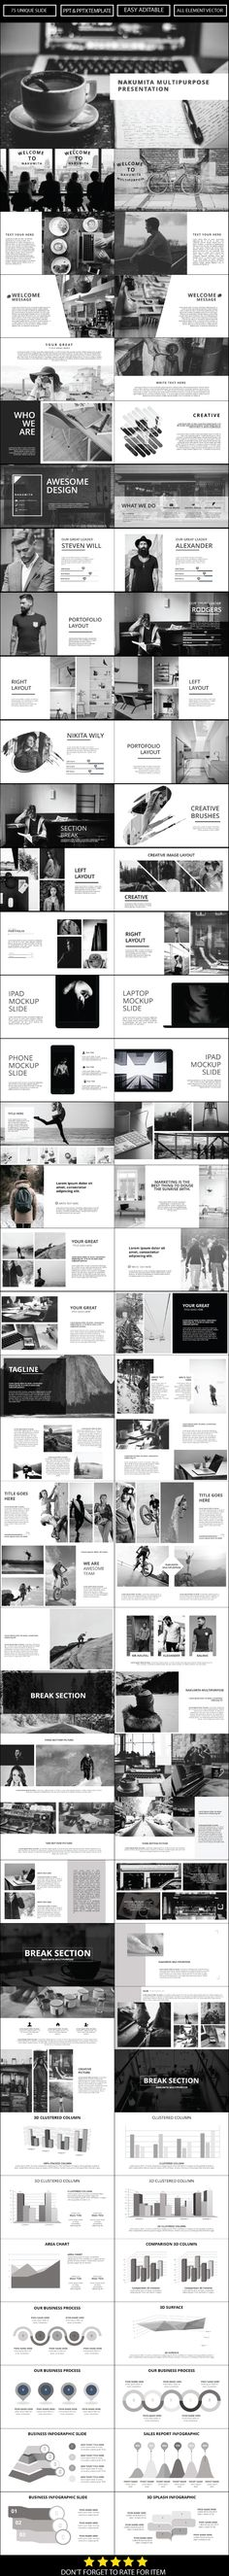 Nakumita Multipurpose Template (How To Get Him To Propose Signs) Business Presentation, Presentation Design, Presentation Templates, Presentation Slides, Web Design, Layout Design, Graphic Design, Template Power Point, Multimedia